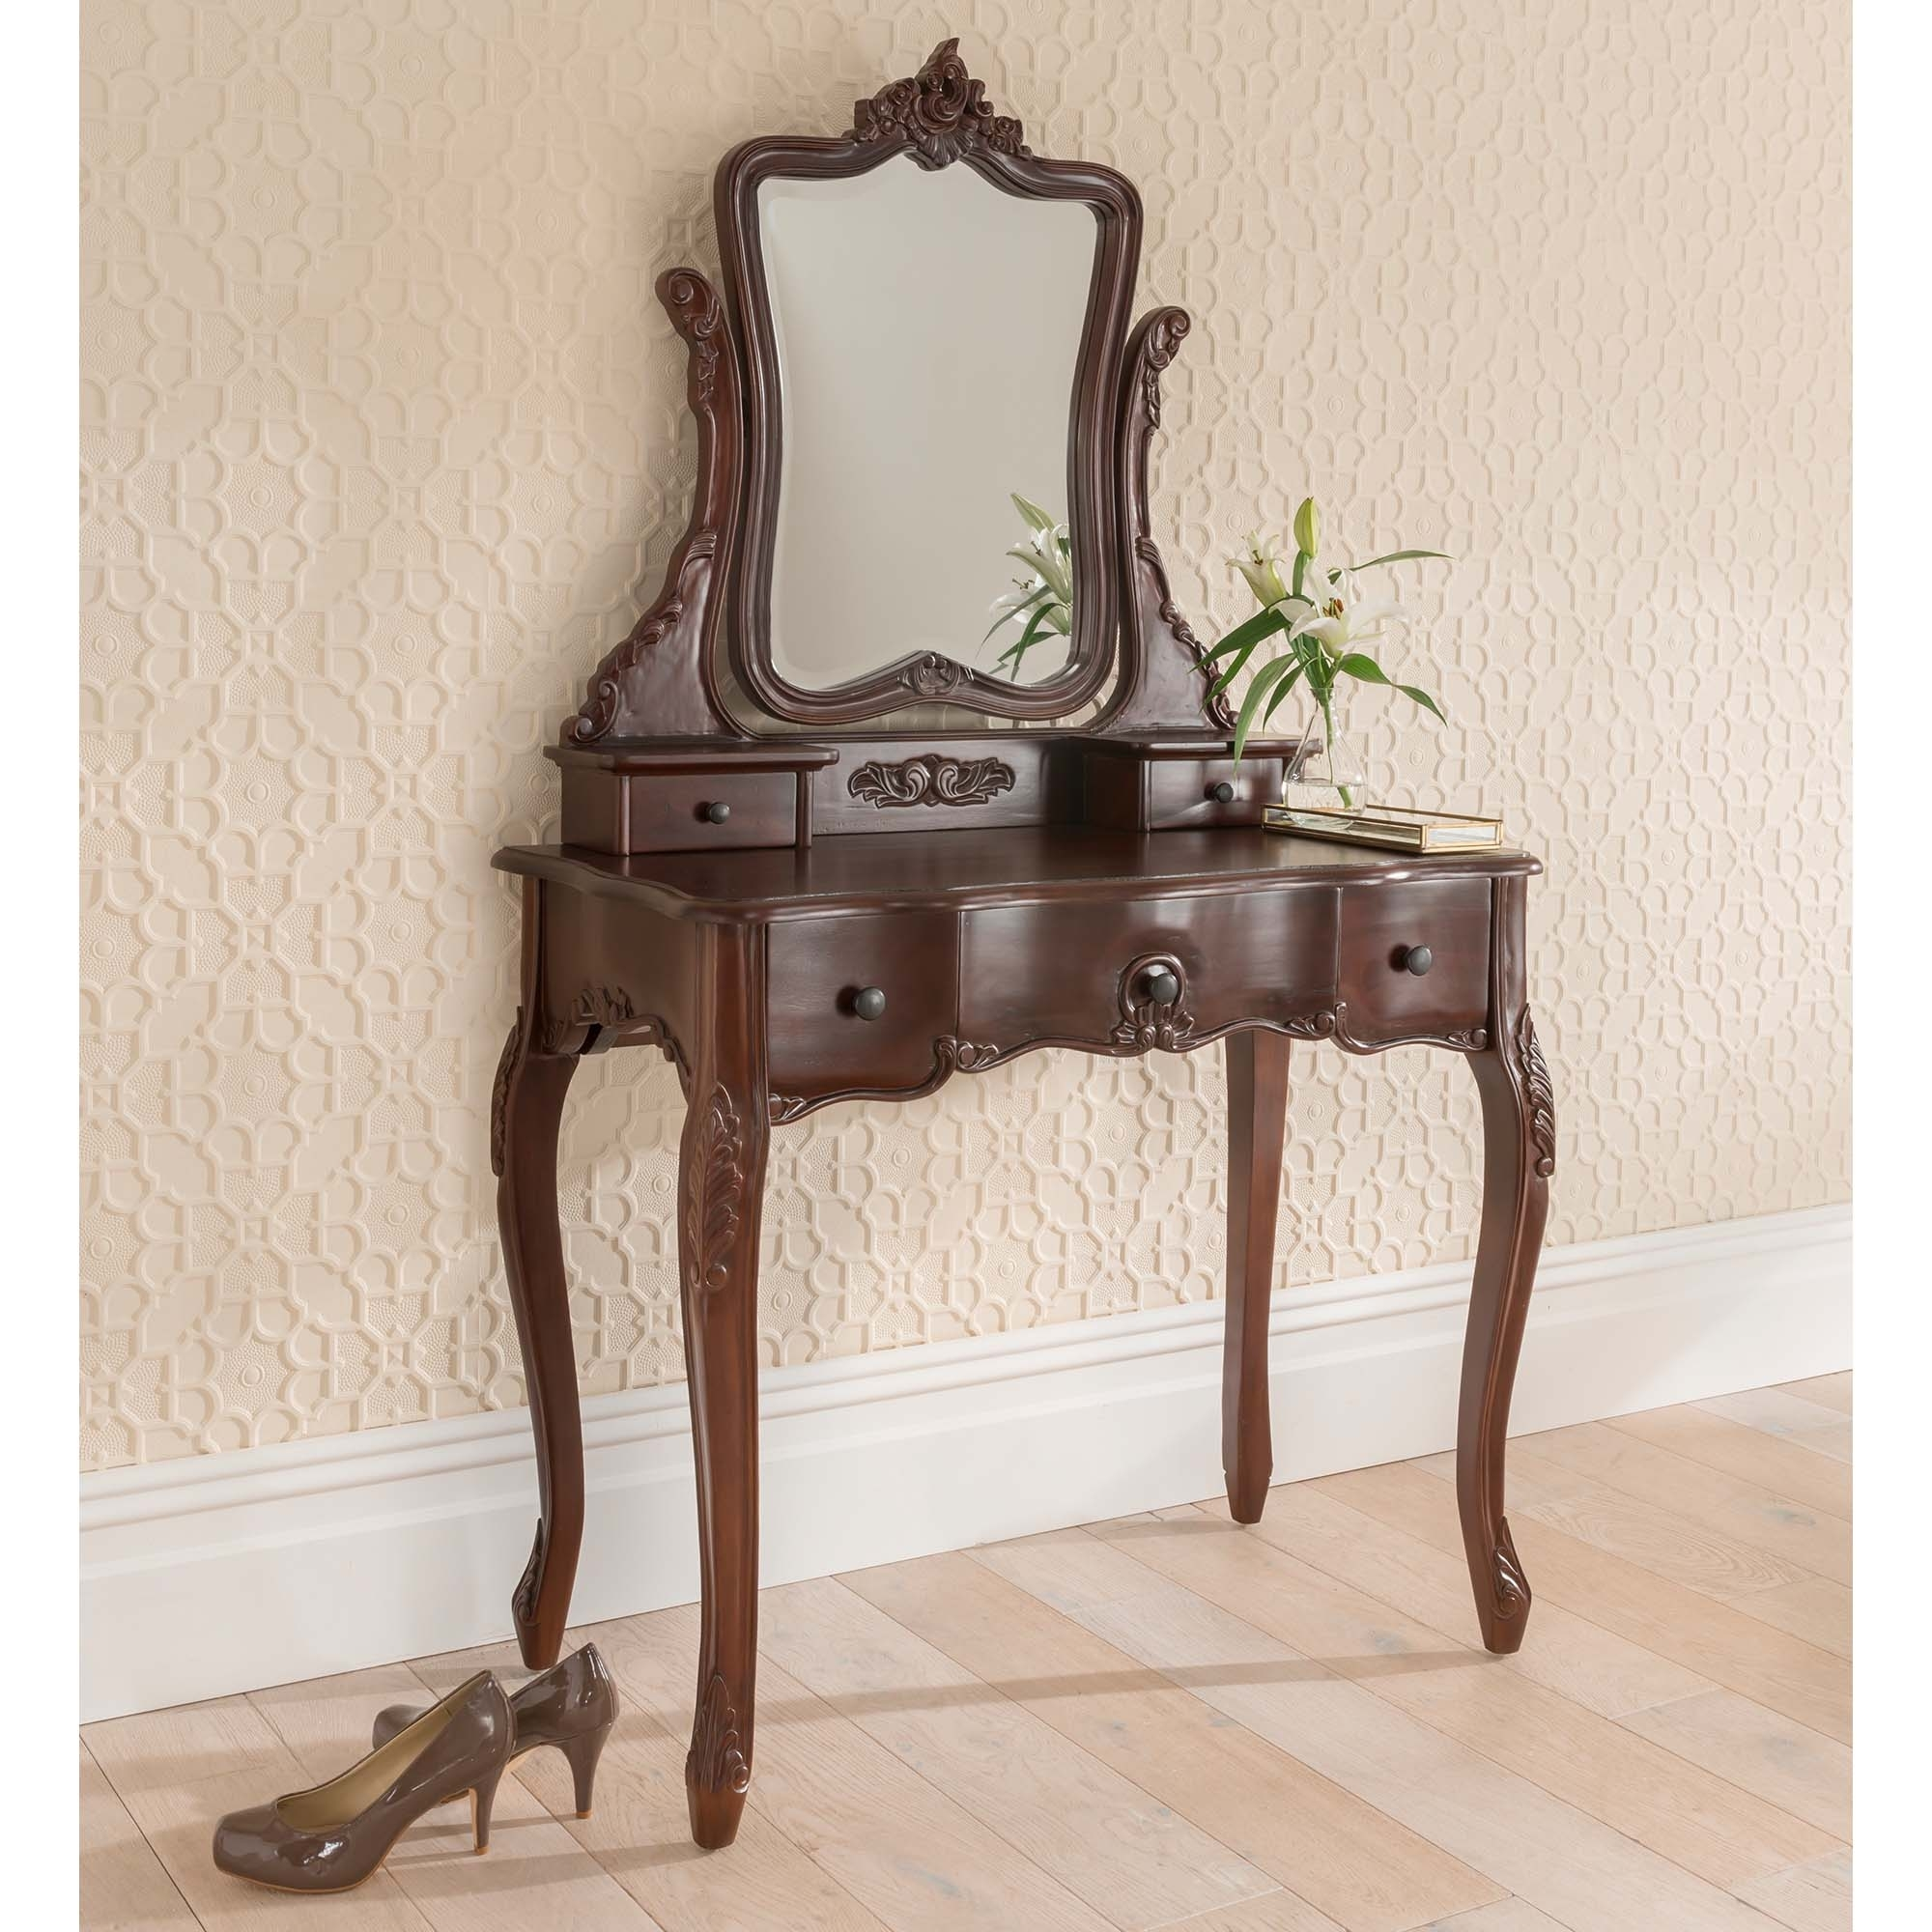 French furniture uk - Raphael Antique French Style Dressing Table